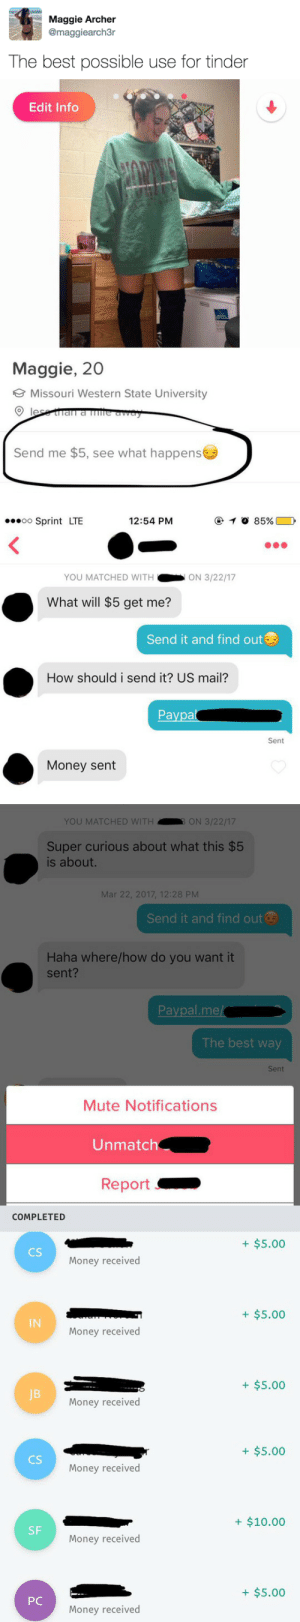 Money, Tinder, and Mute: Maggie Archer  @maggiearch3r  The best possible use for tinder   Edit Info  Maggie, 20  Missouri Western State University  Send me $5, see what happens   oo Sprint LTE  12:54 PM  ④  85%  YOU MATCHED WITHON 3/22/17  What will $5 get me?  Send it and find out  How should i send it? US mail?  Paypa  Sent  Money sent   YOU MATCHED WITH  ON 3/22/17  Super curious about what this $5  is about.  Mar 22, 2017, 12:28 PM  Send it and find out  Haha where/how do you want it  sent?  Paypal.me/  The best way  Sent  Mute Notifications  Unmatch  Report>   COMPLETED  +$5.00  CS  Money received  + $5.00  IN  Money received  +$5.00  JB  Money received  +$5.00  CS  Money received  + $10.00  SF  Money received  + $5.00  РС  Money received